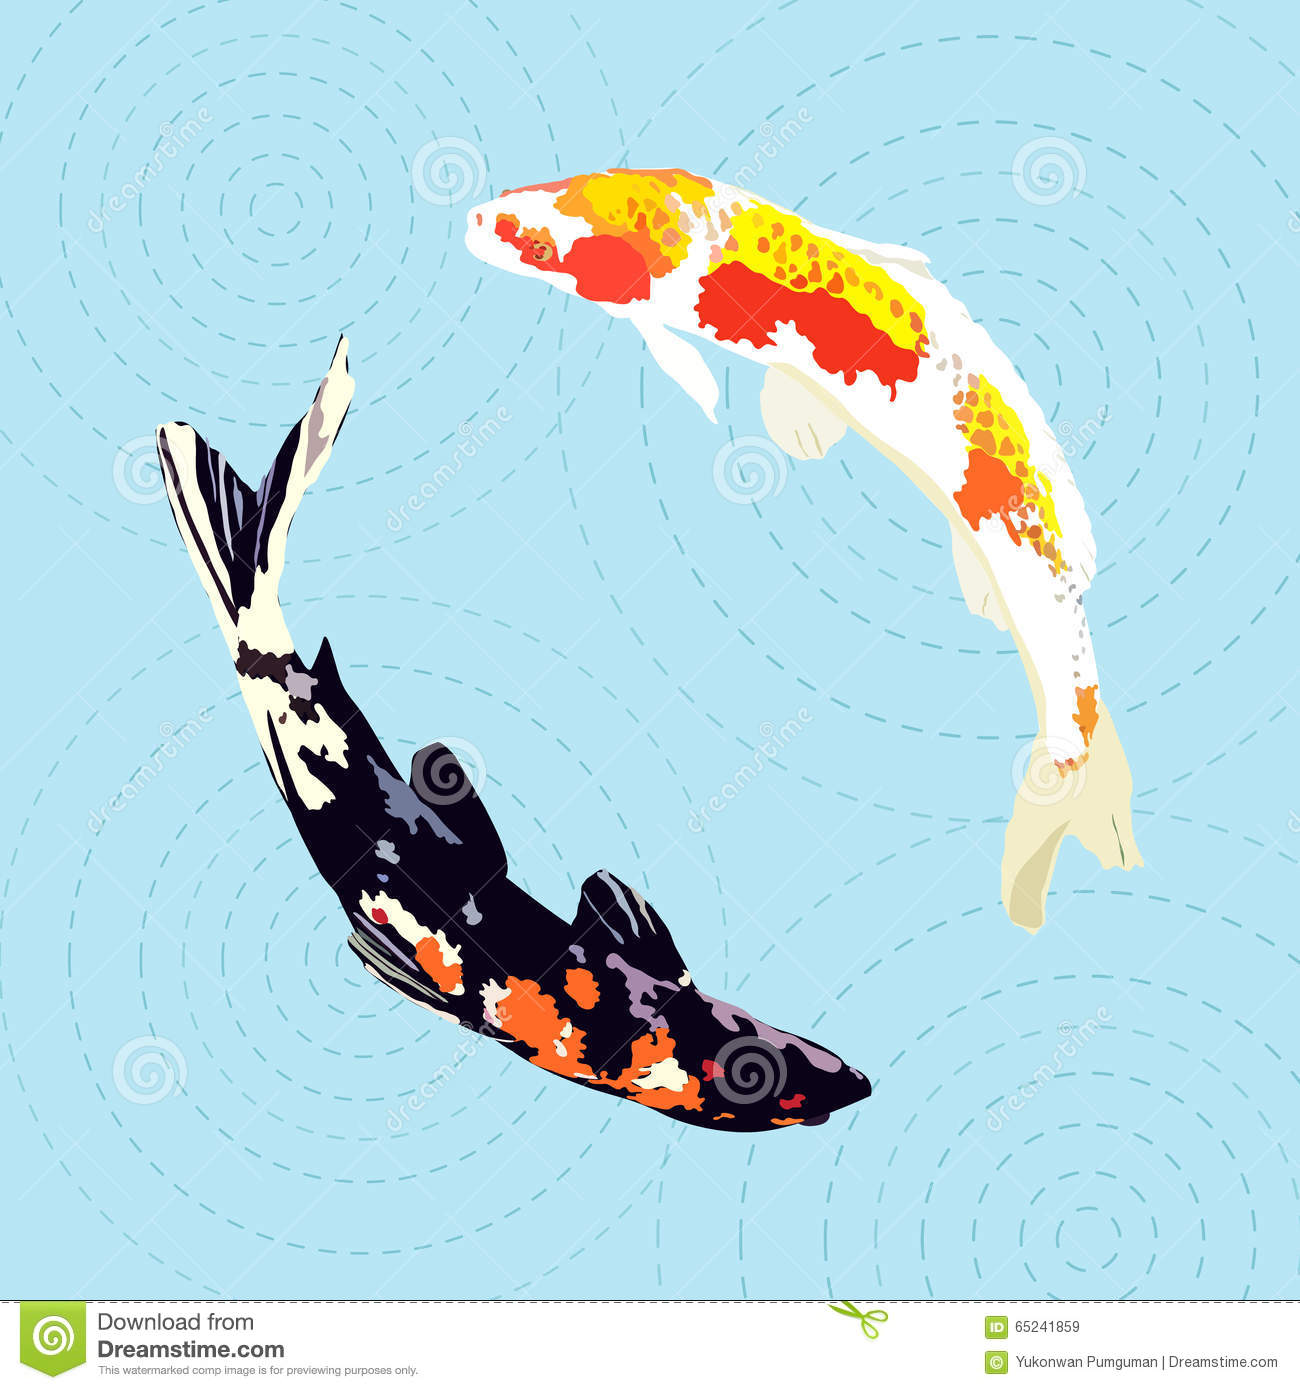 Chinese carp japanese koi fish vector illustration stock for Koi fish vector